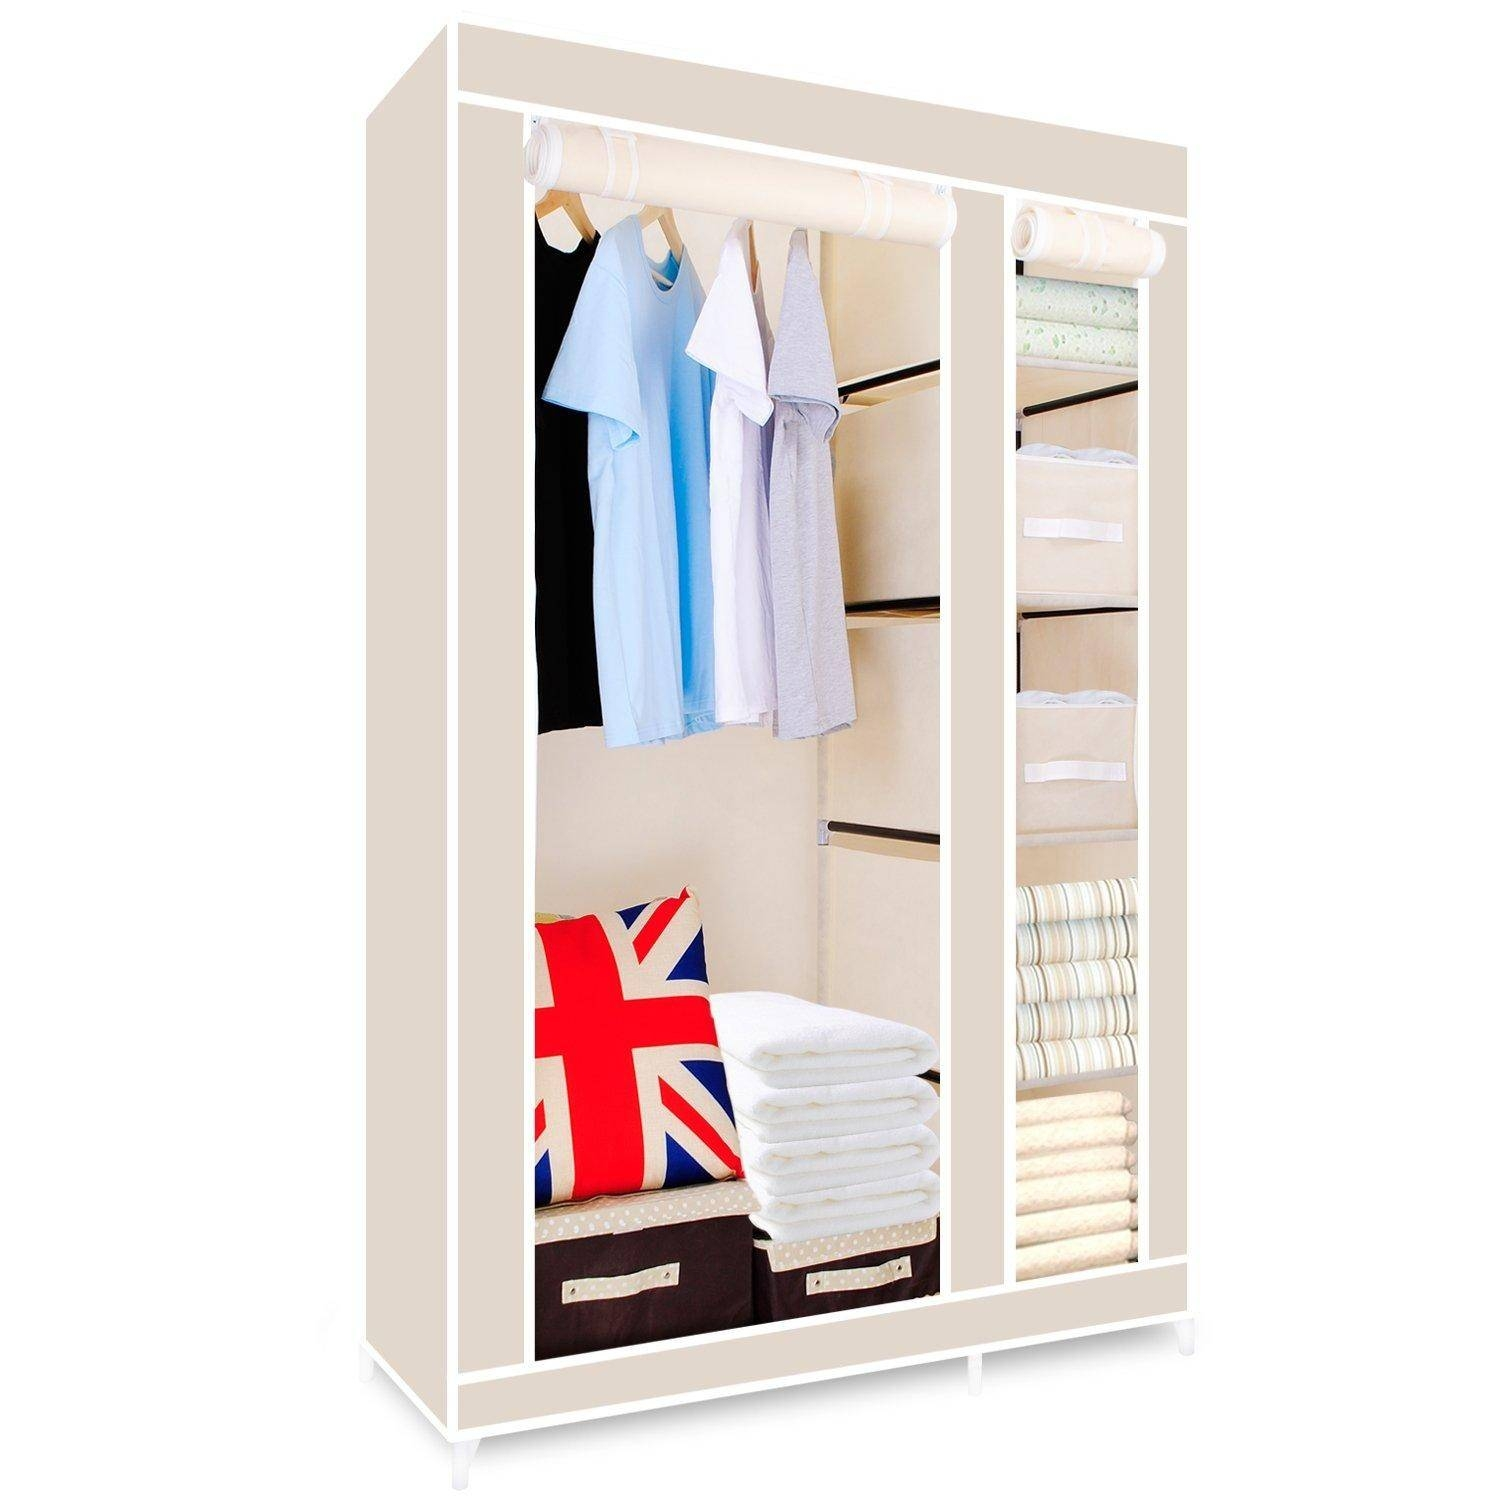 Hst Mall Double Canvas Wardrobe Cupboard Clothes Storage Solution throughout Double Canvas Wardrobe Rail Clothes Storage Cupboard (Image 17 of 30)